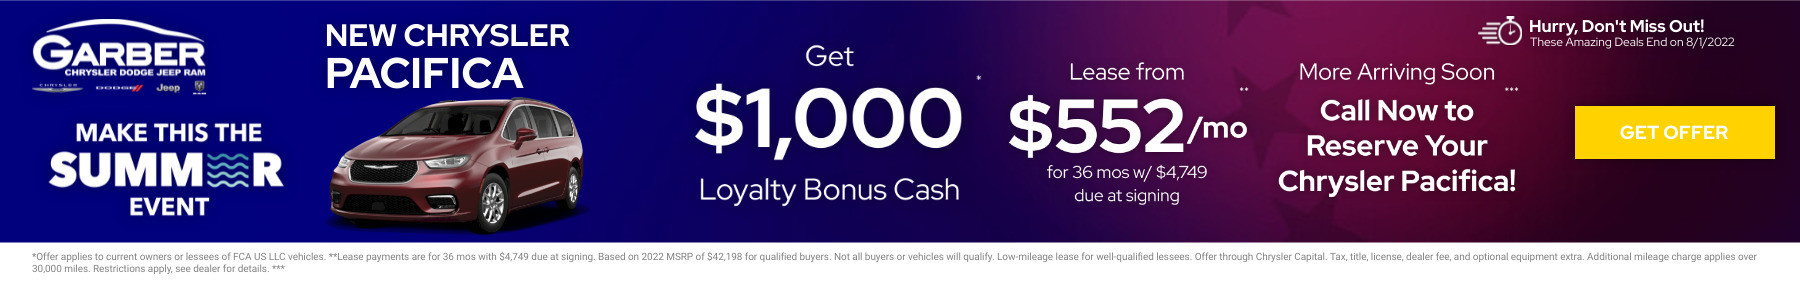 New Chrysler Pacifica Current Deals and Offers in Green Cove Springs, FL